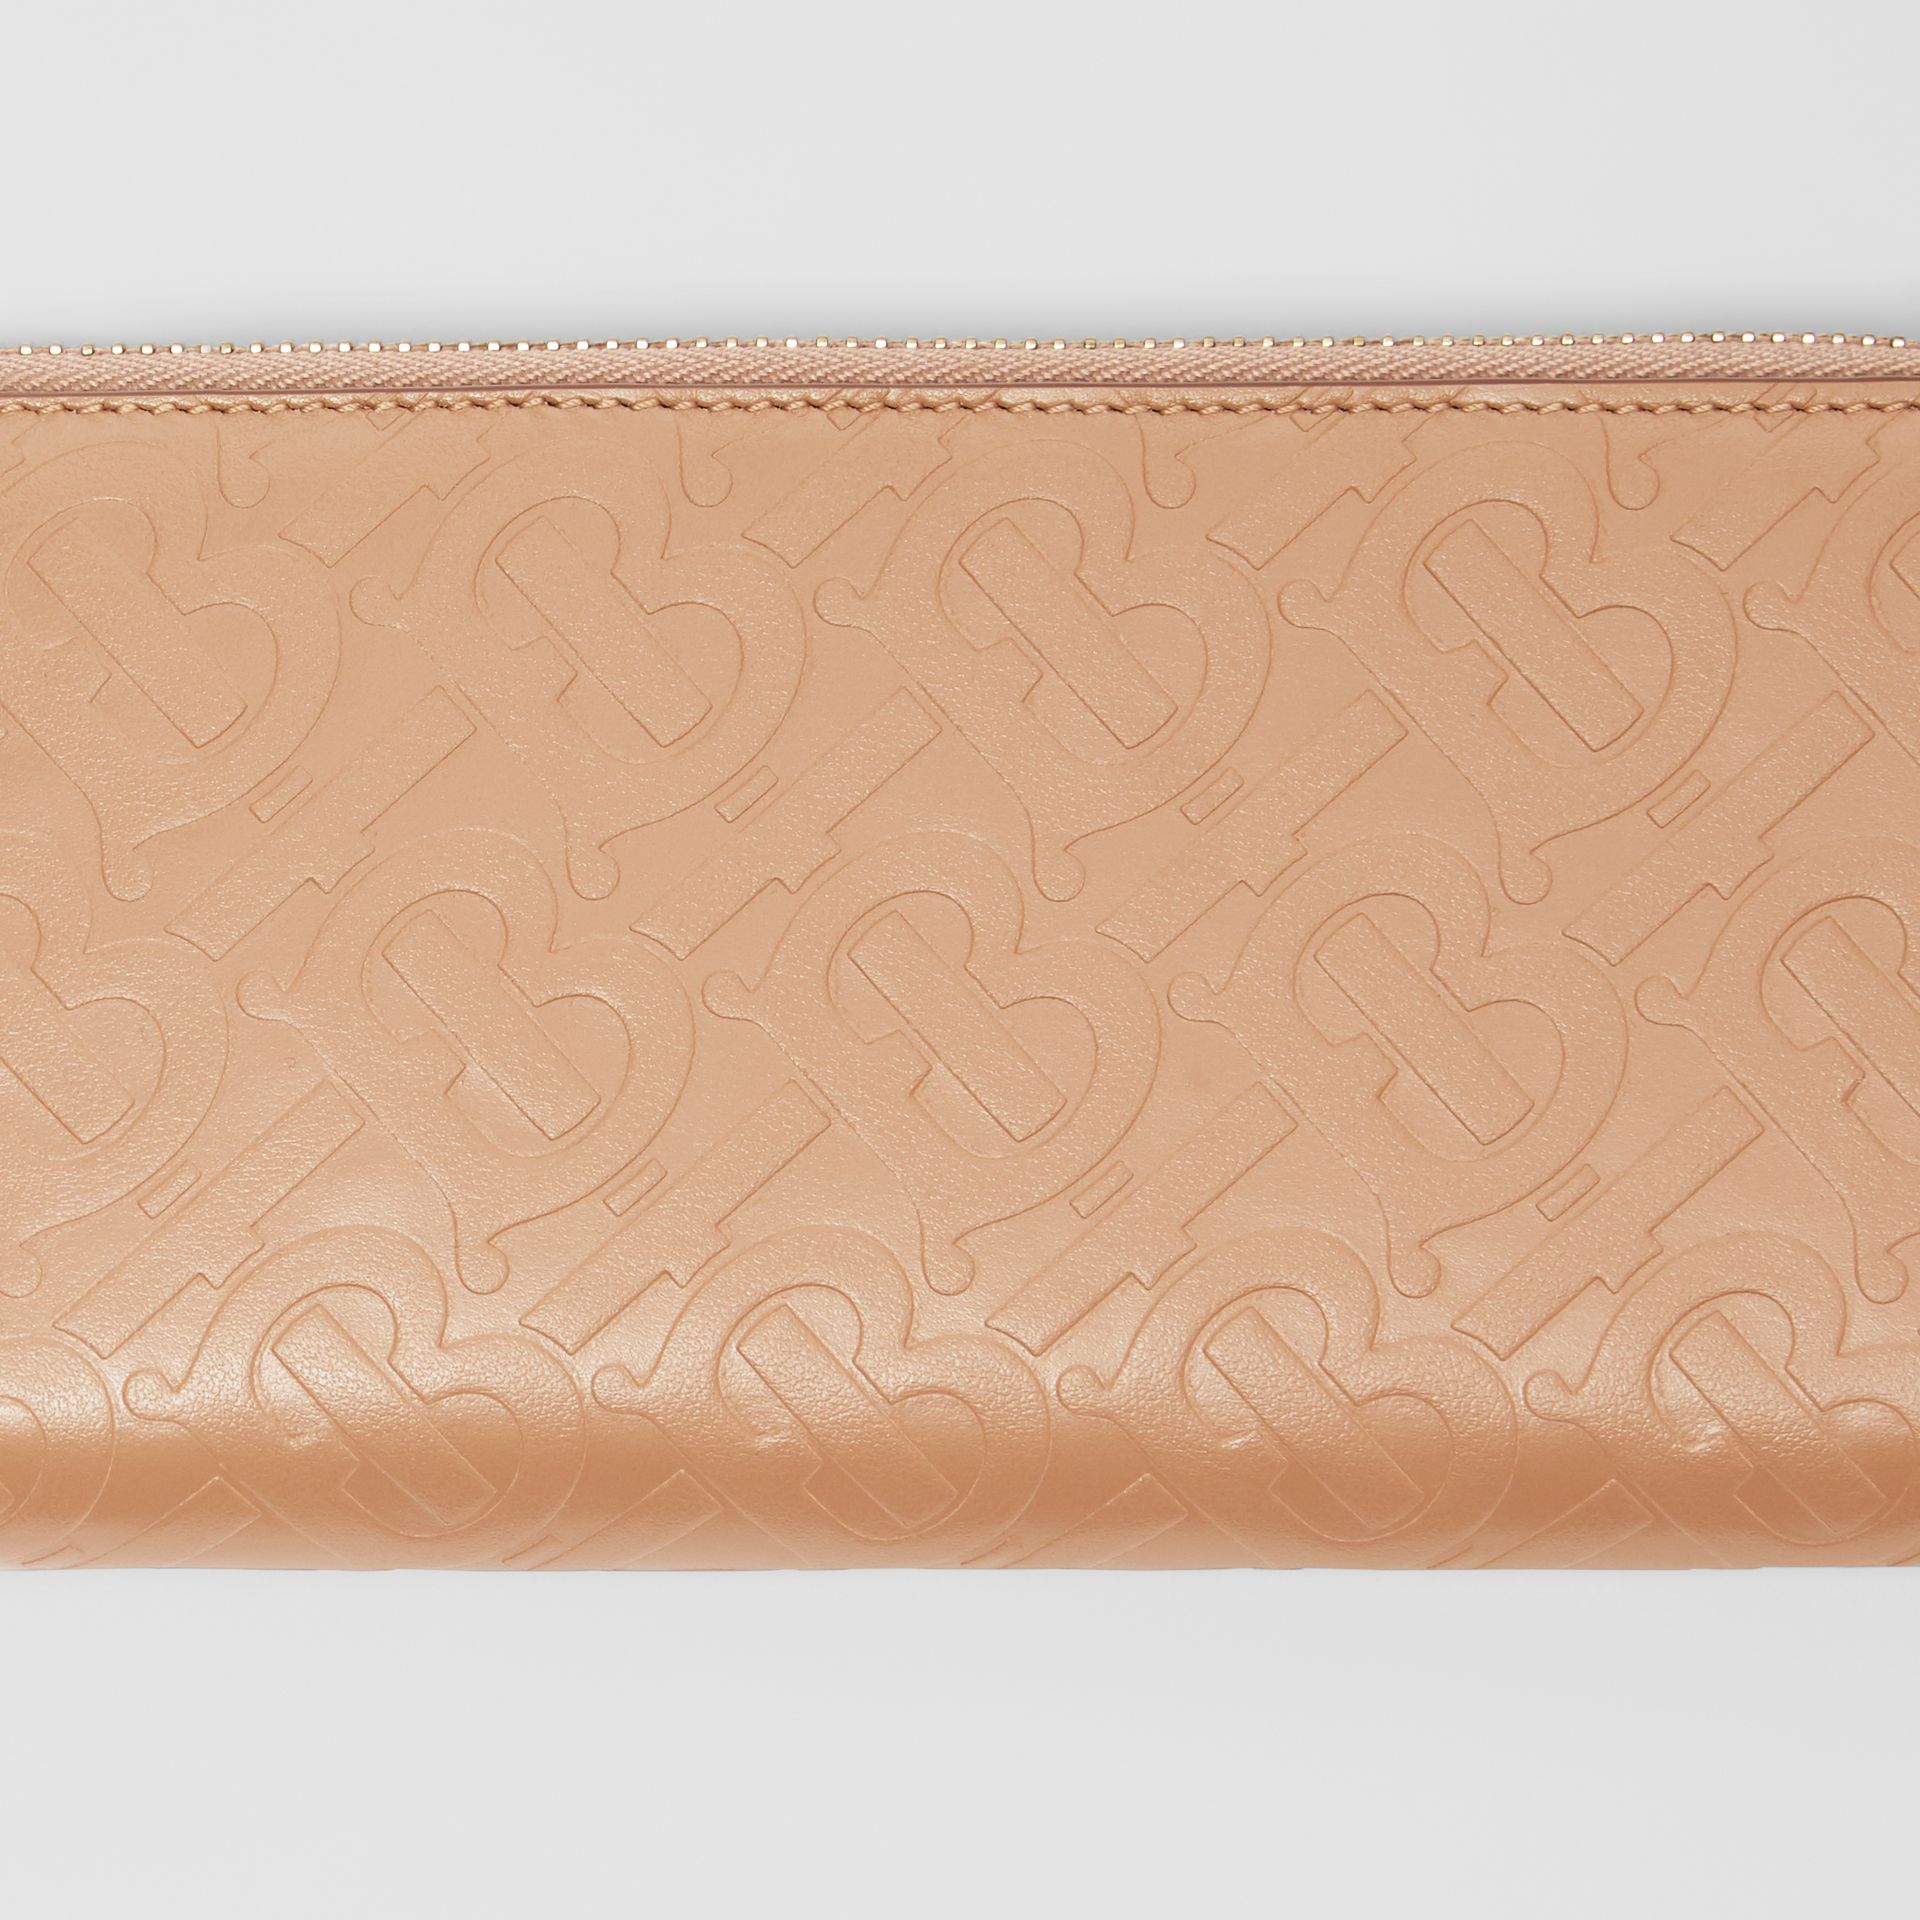 Monogram Leather Ziparound Wallet in Light Camel - Women | Burberry Canada - gallery image 1